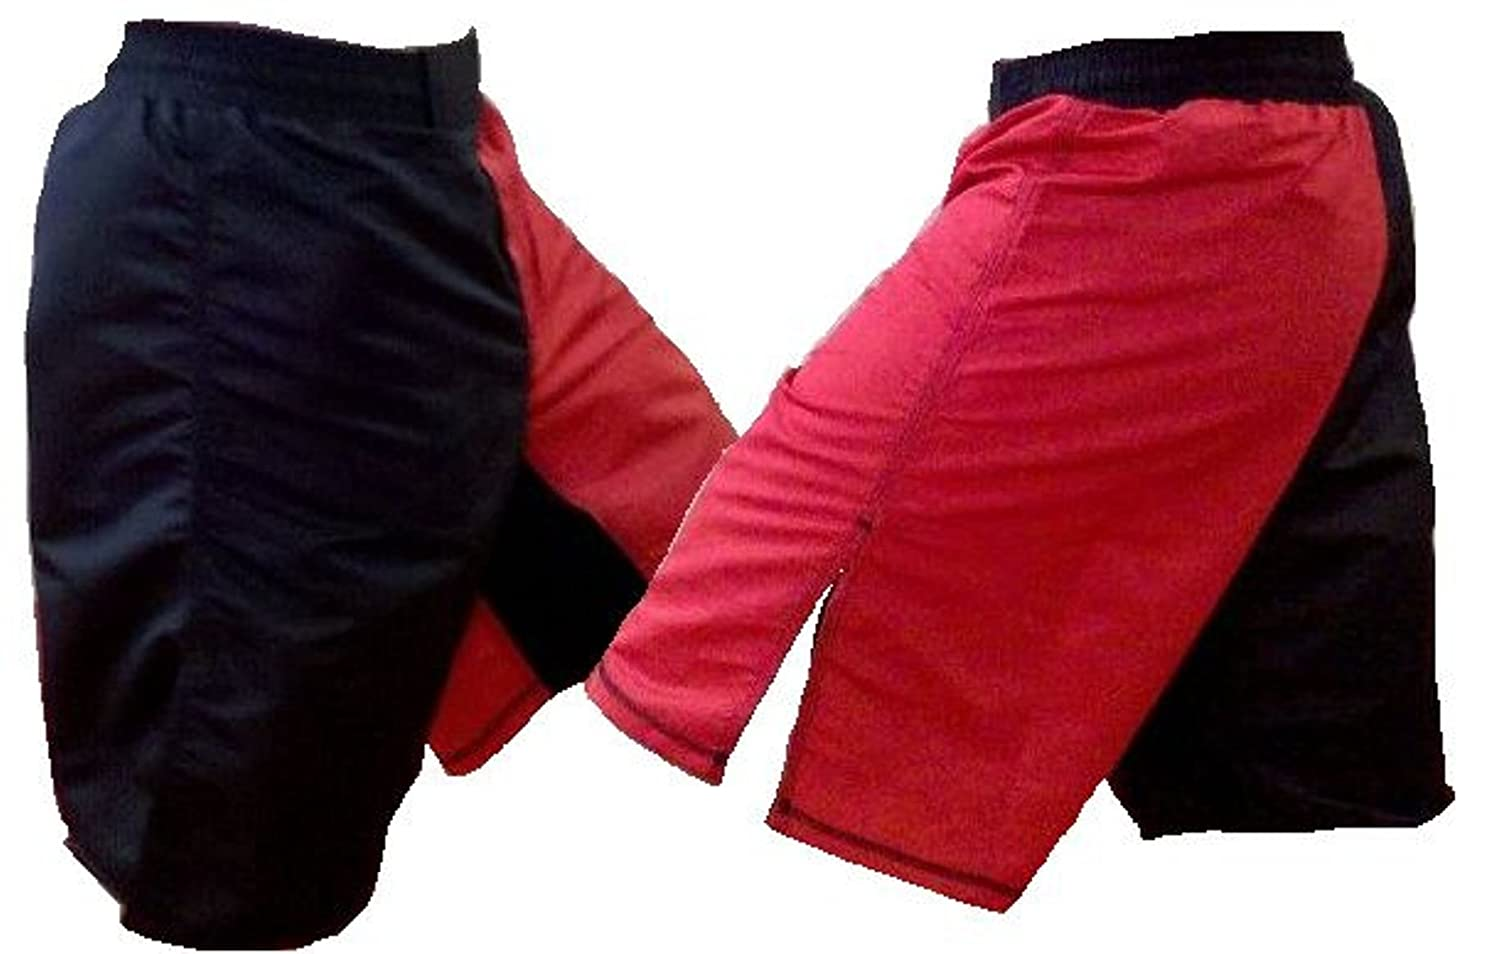 Pefect for Crossfit too! Blank MMA Shorts no logos